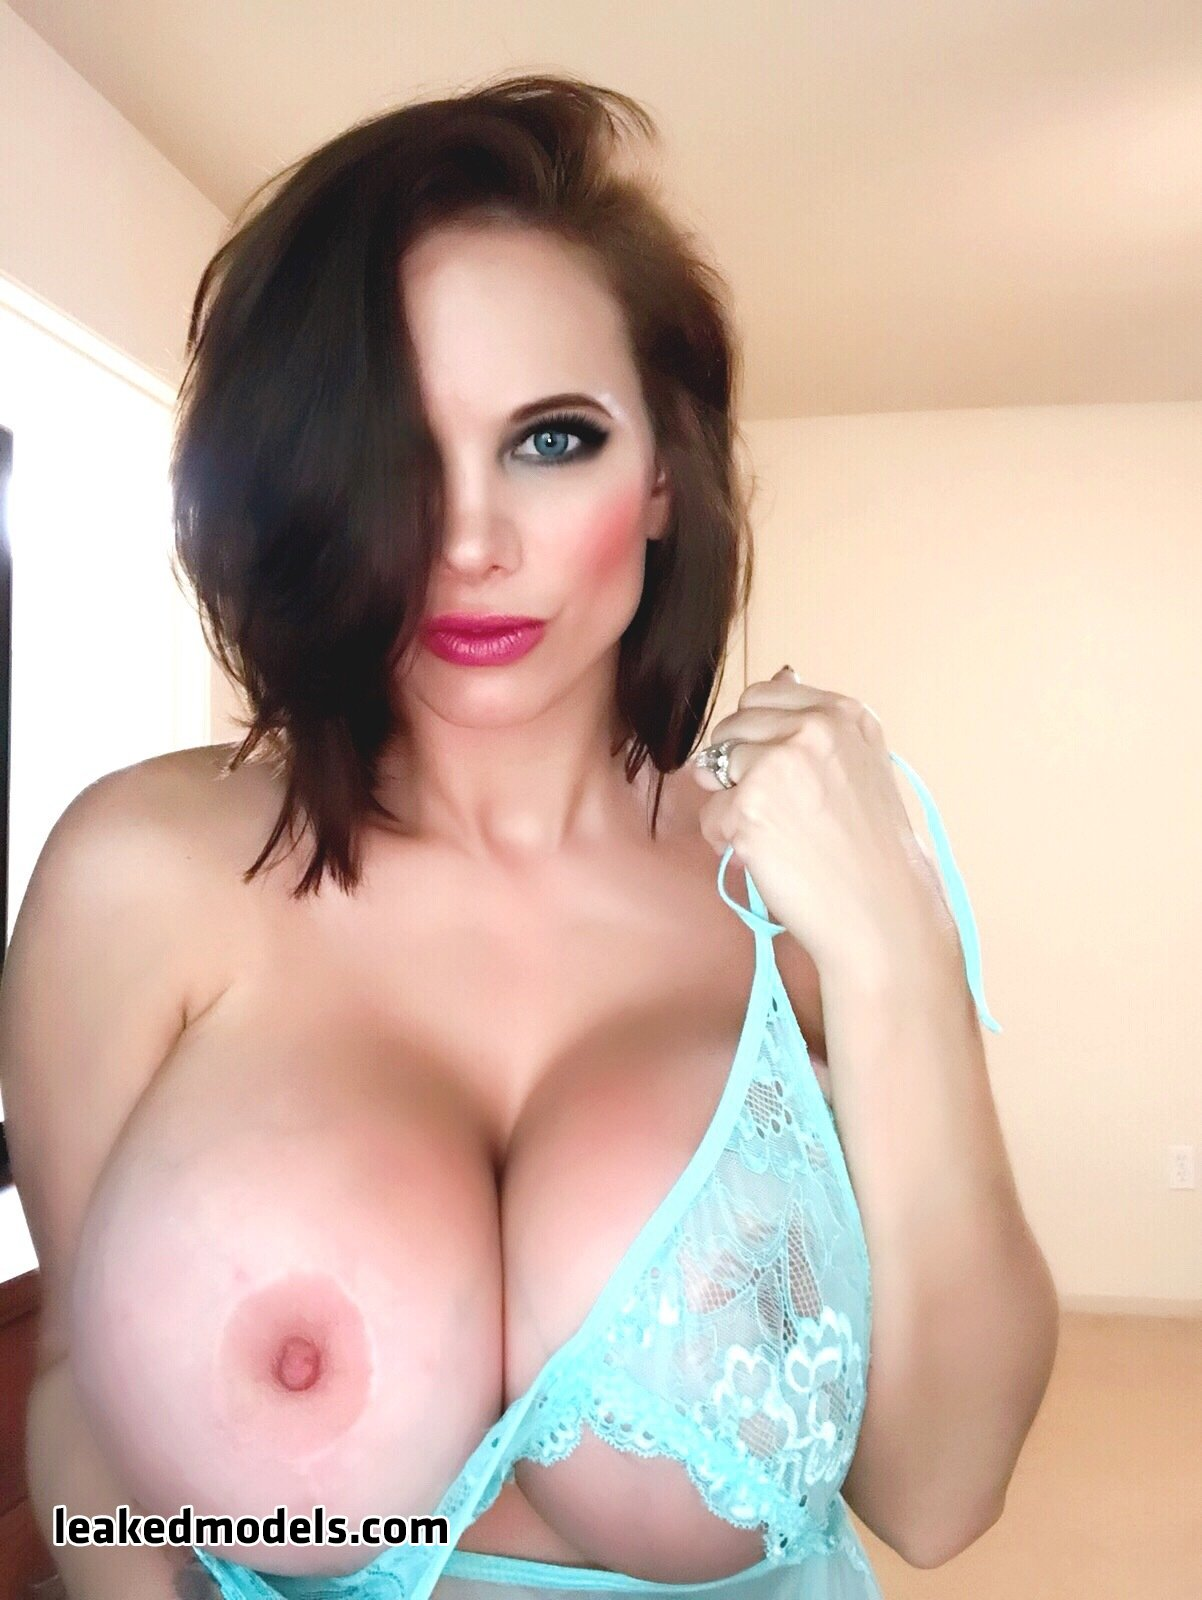 thebrittanyxoxo OnlyFans Nude Leaks (27 Photos)